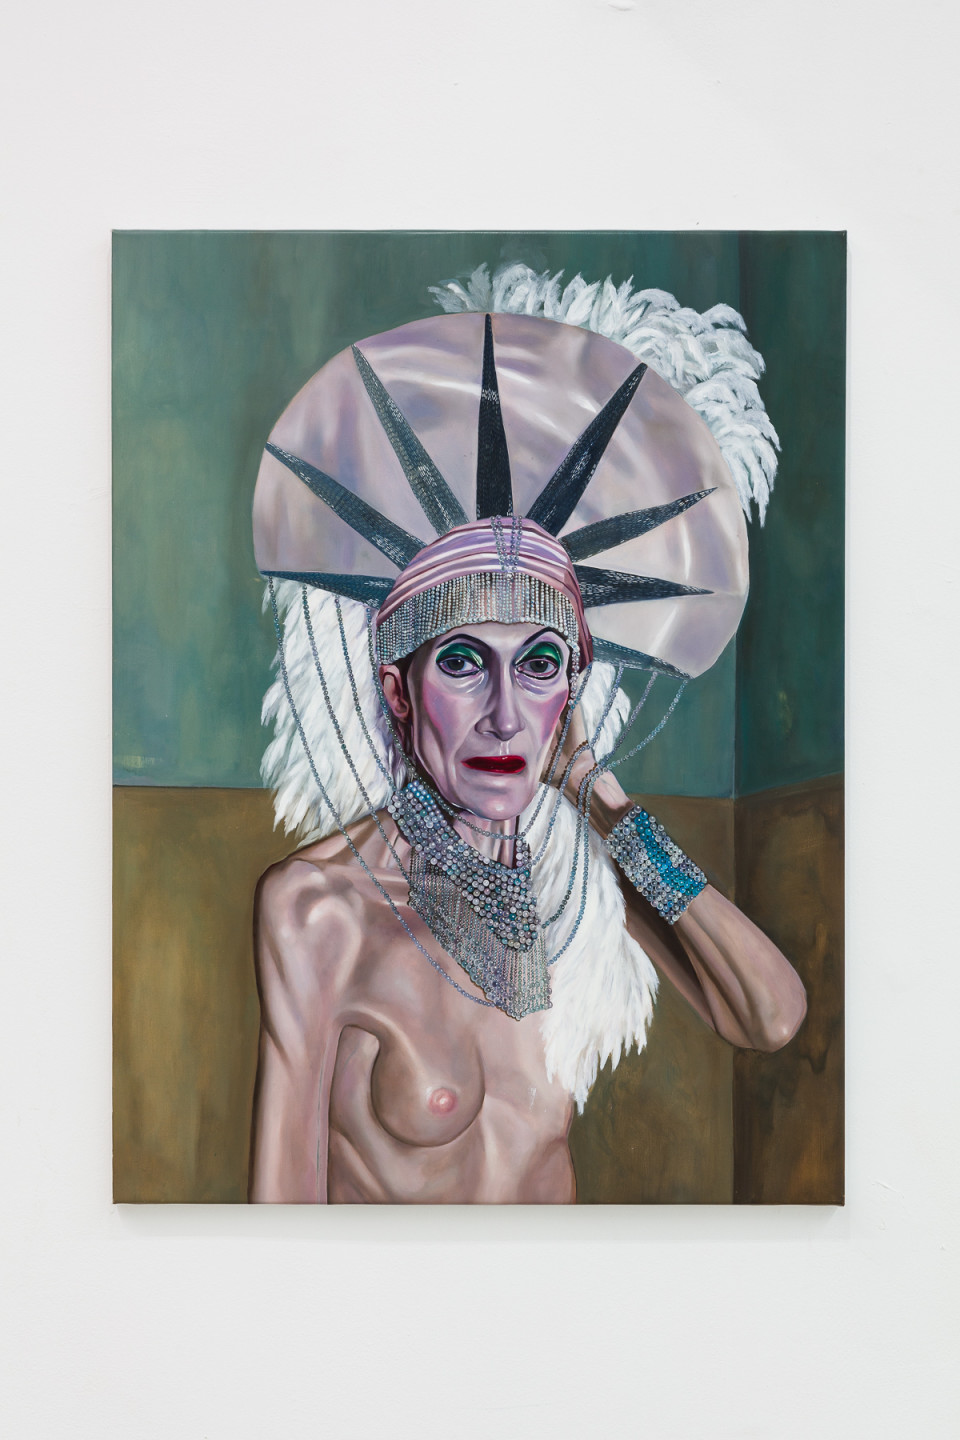 Tali Lennox Curtain Call for Linda Leven, Room 629, 2020 Oil on canvas 76.2 x 101.6 cm 30 x 40 in